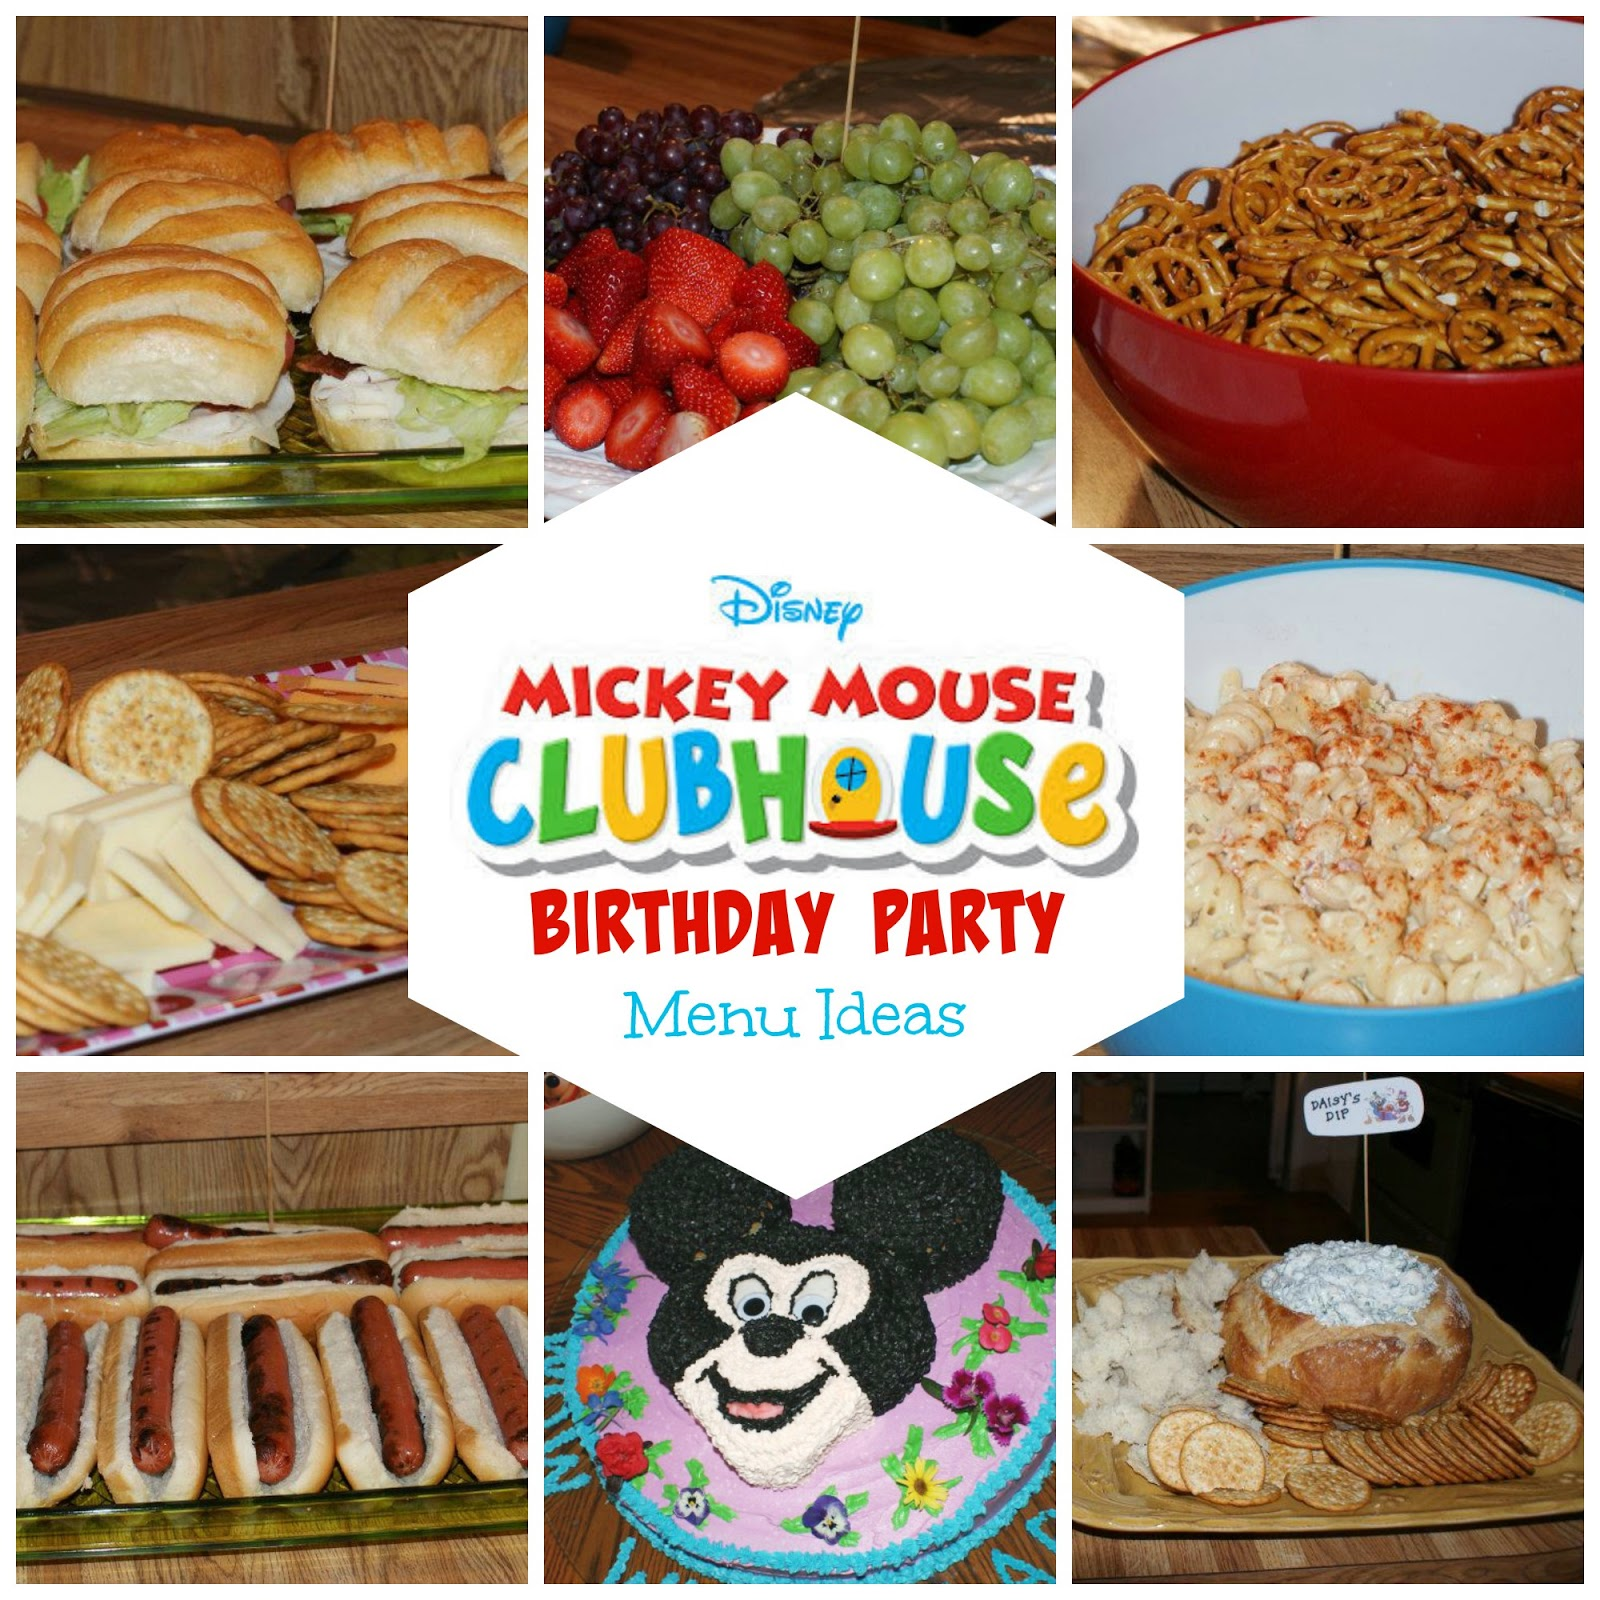 8 mickey mouse birthday party menu ideas the two bite club. Black Bedroom Furniture Sets. Home Design Ideas